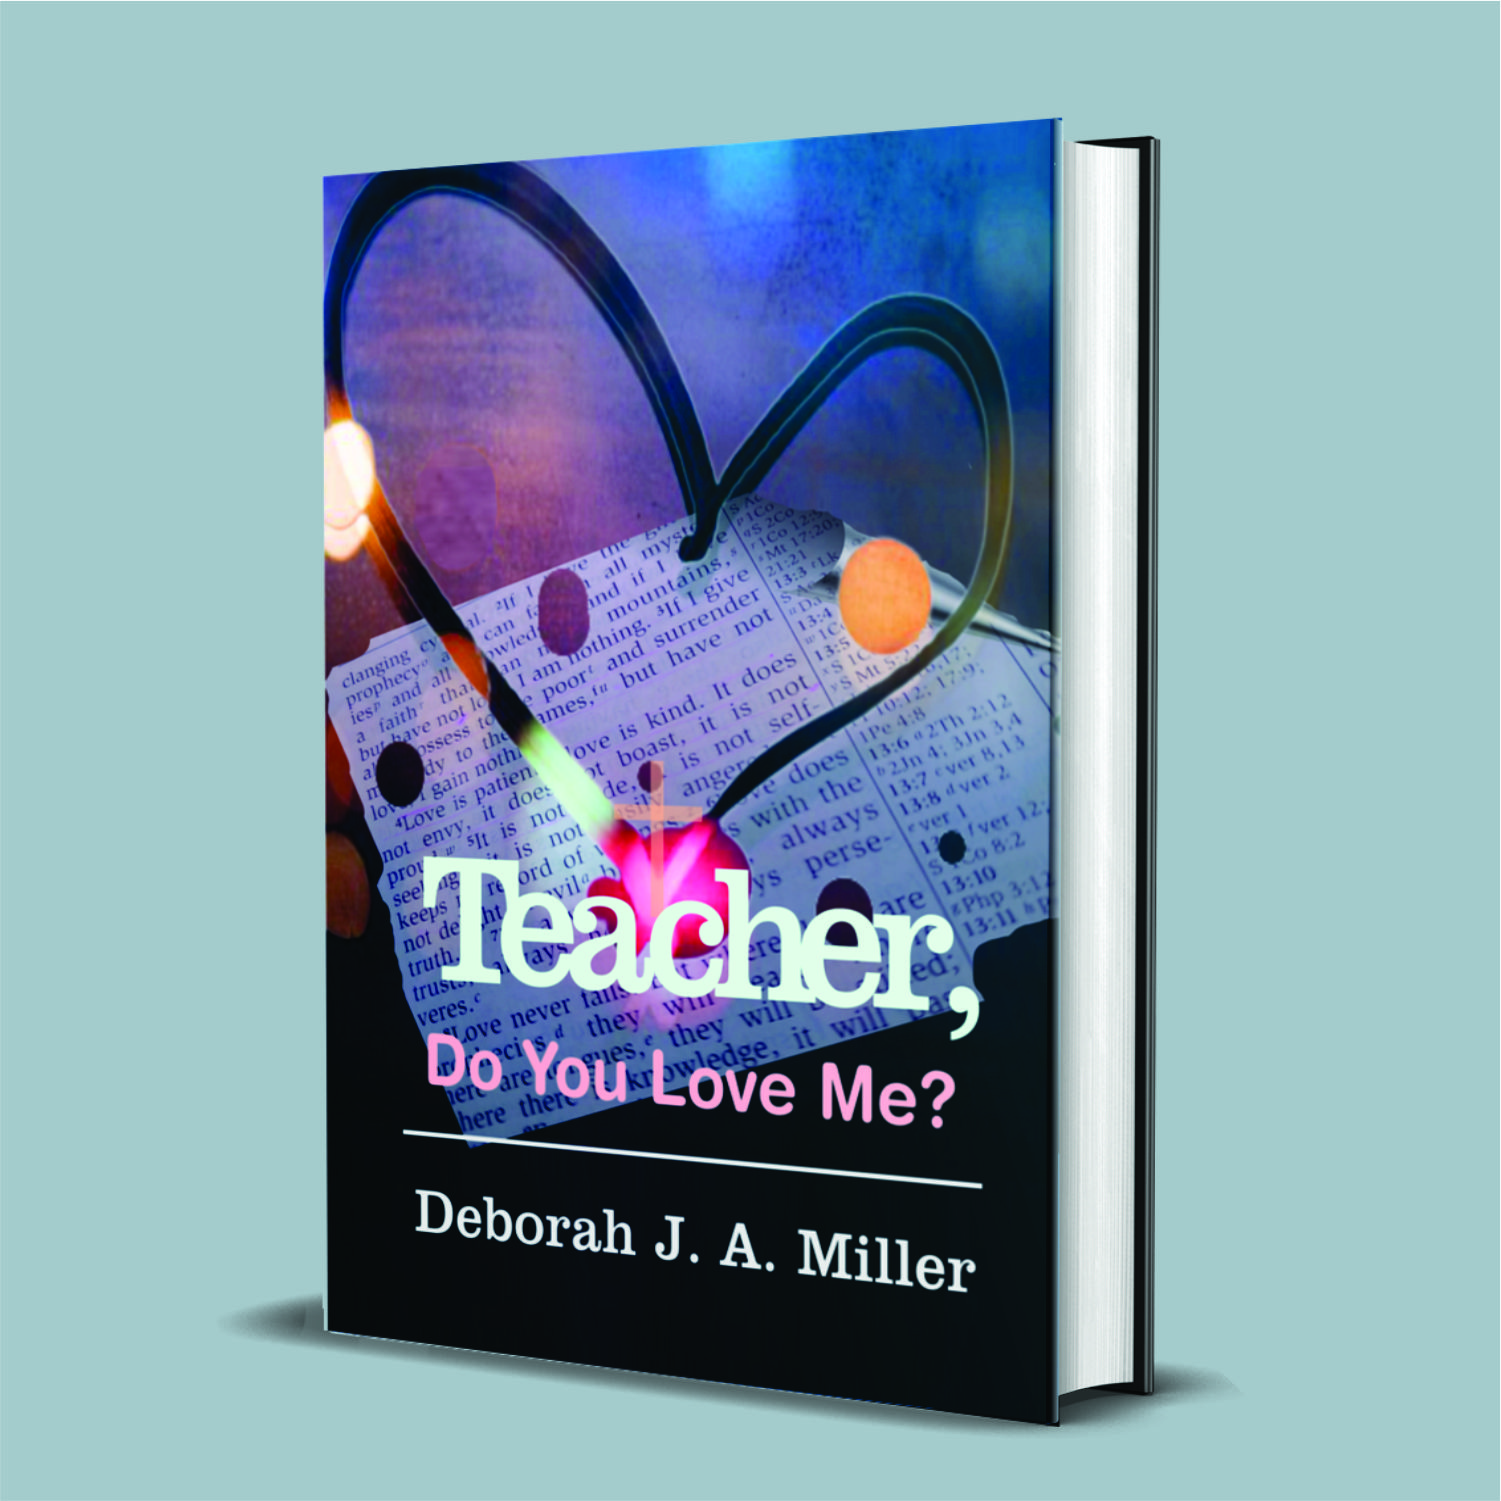 Christian Teacher Examines What It Means to Teach Others With 1 Corinthians 13 In Mind